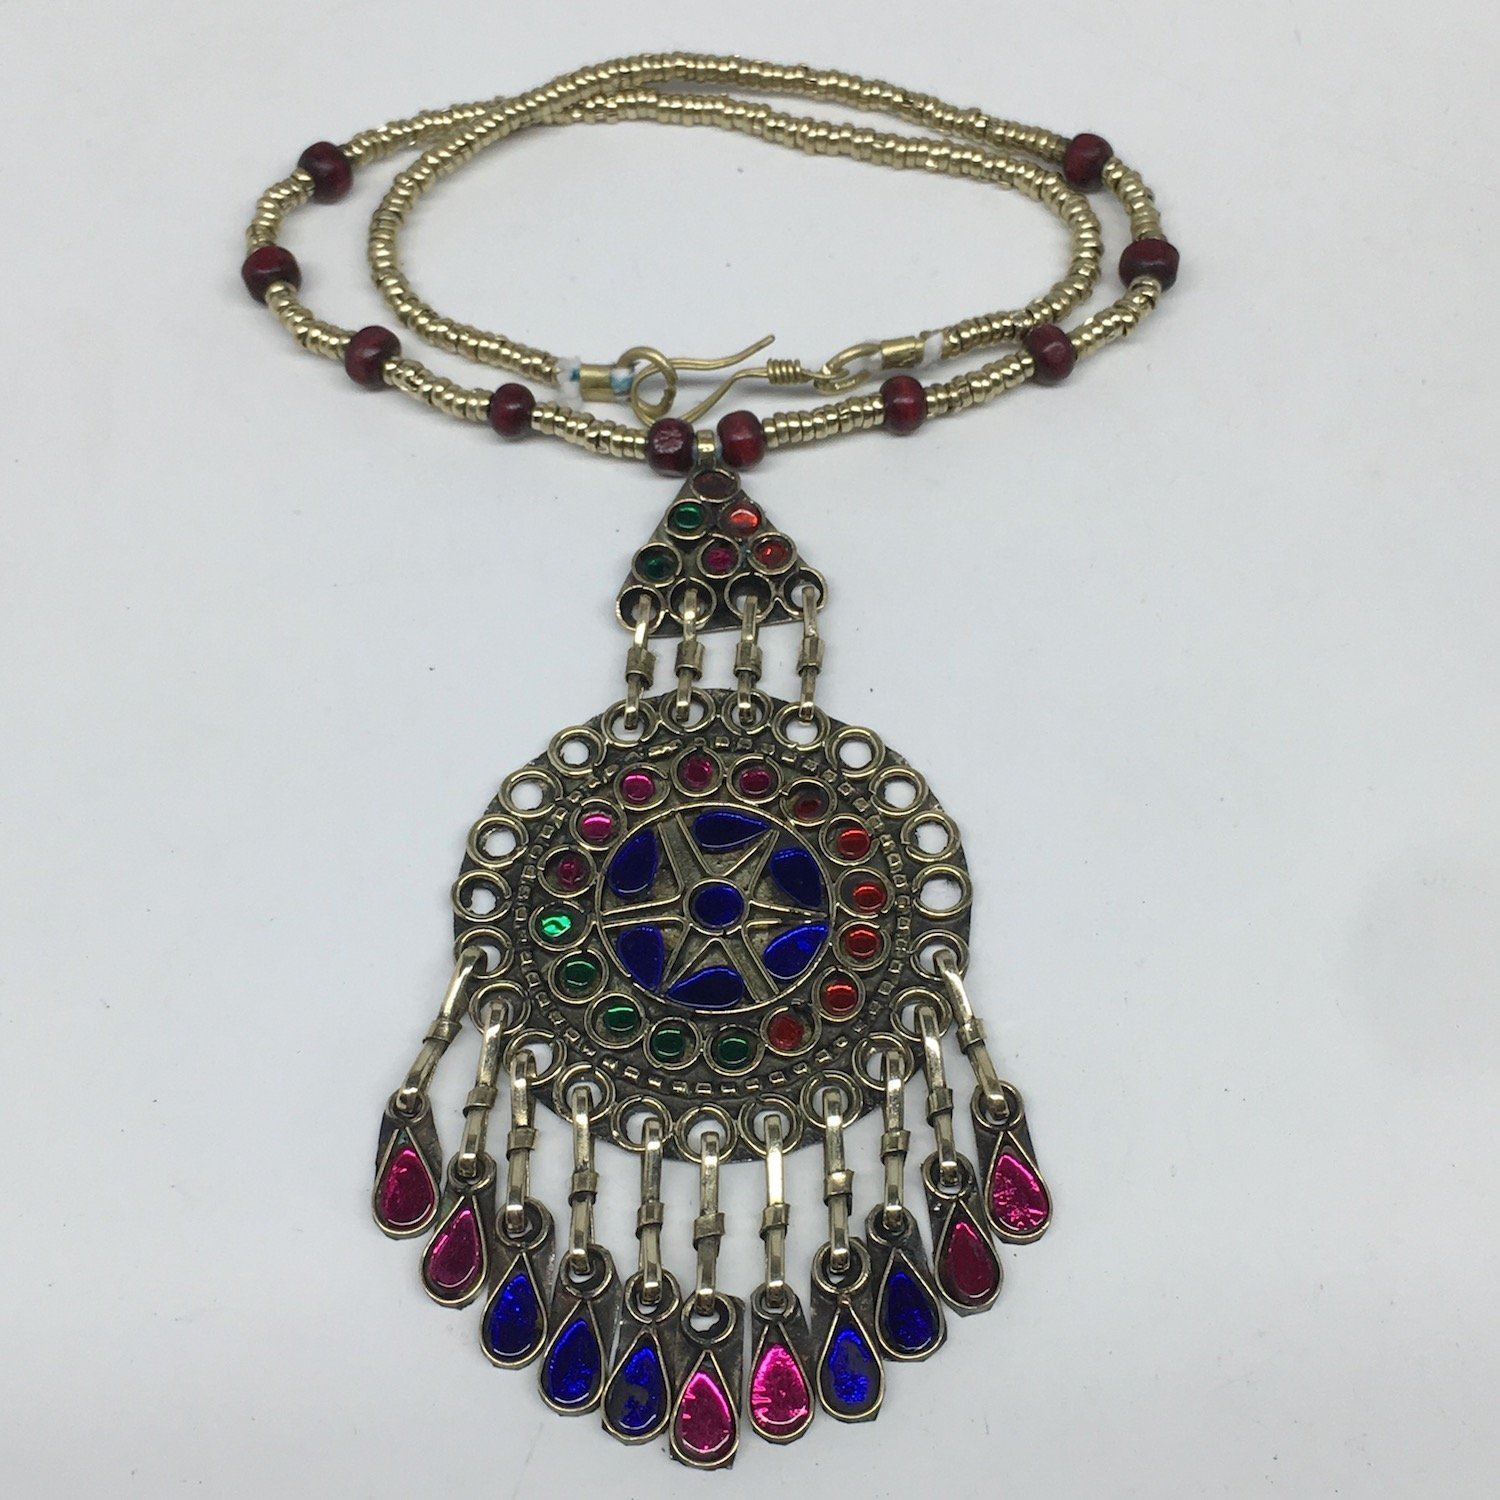 Kuchi Necklace Afghan Tribal Fashion Colorful Glass ATS Necktie Necklace, KN434